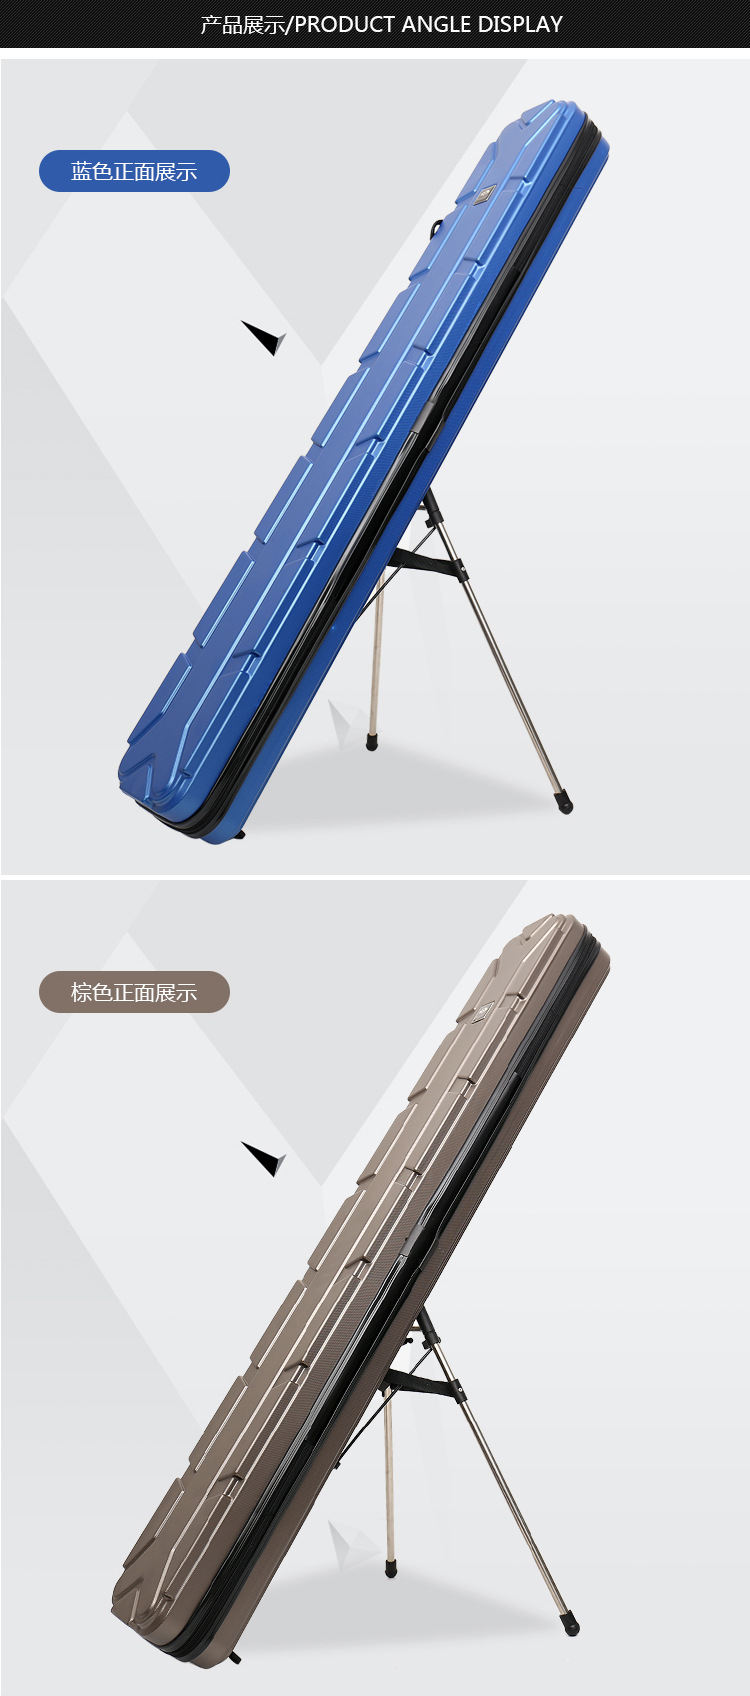 2017 5 color ABS Hard shell fishing rod bag With bracket waterproof brand Fishing Bag Outdoor Pesca accessories FB005